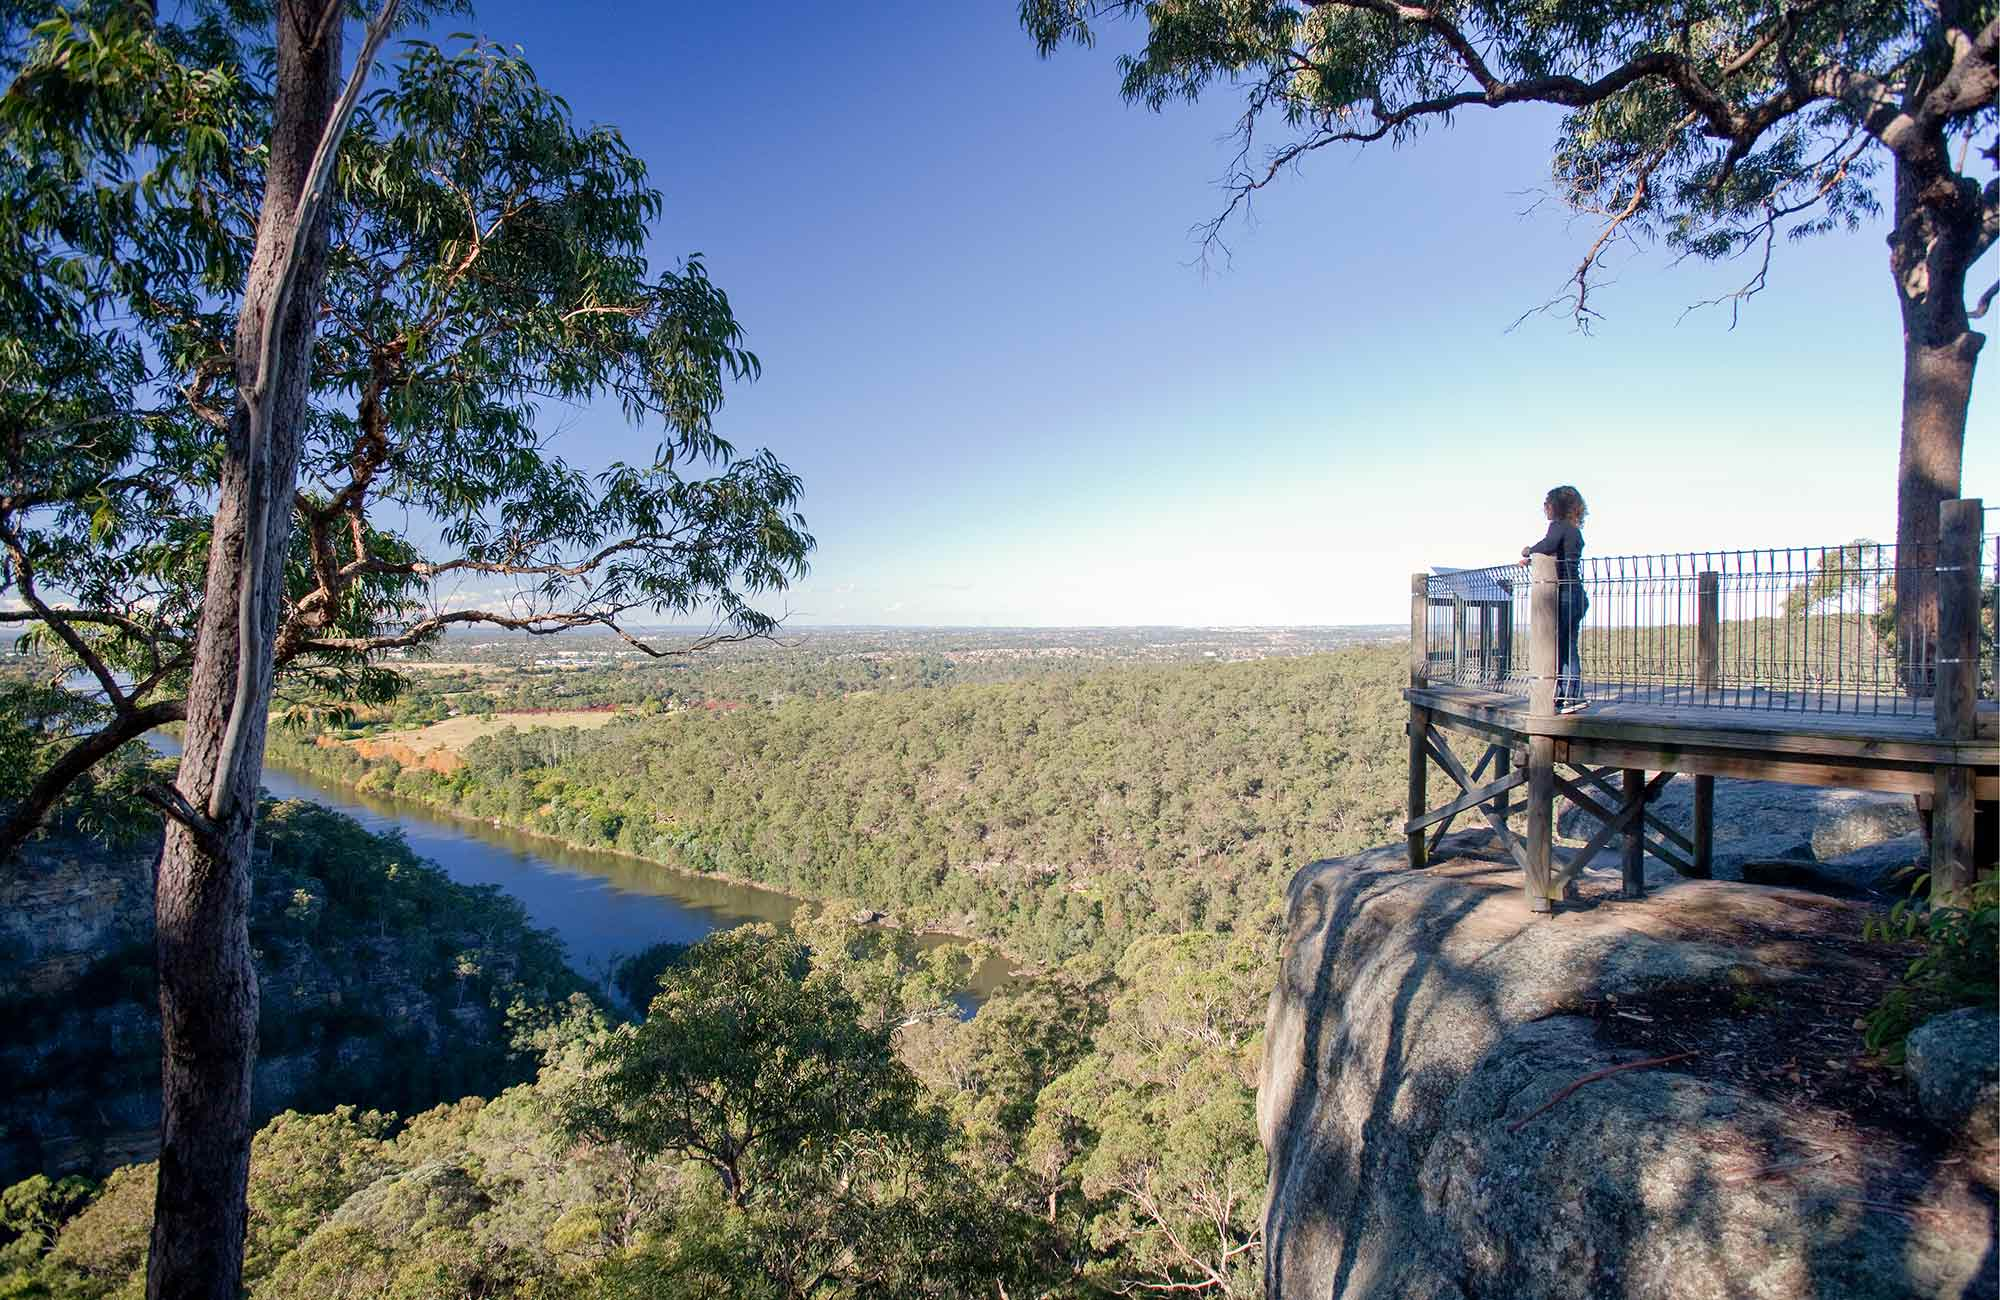 Mount Portal lookout, Blue Mountains National Park. Photo: Nick Cubbin